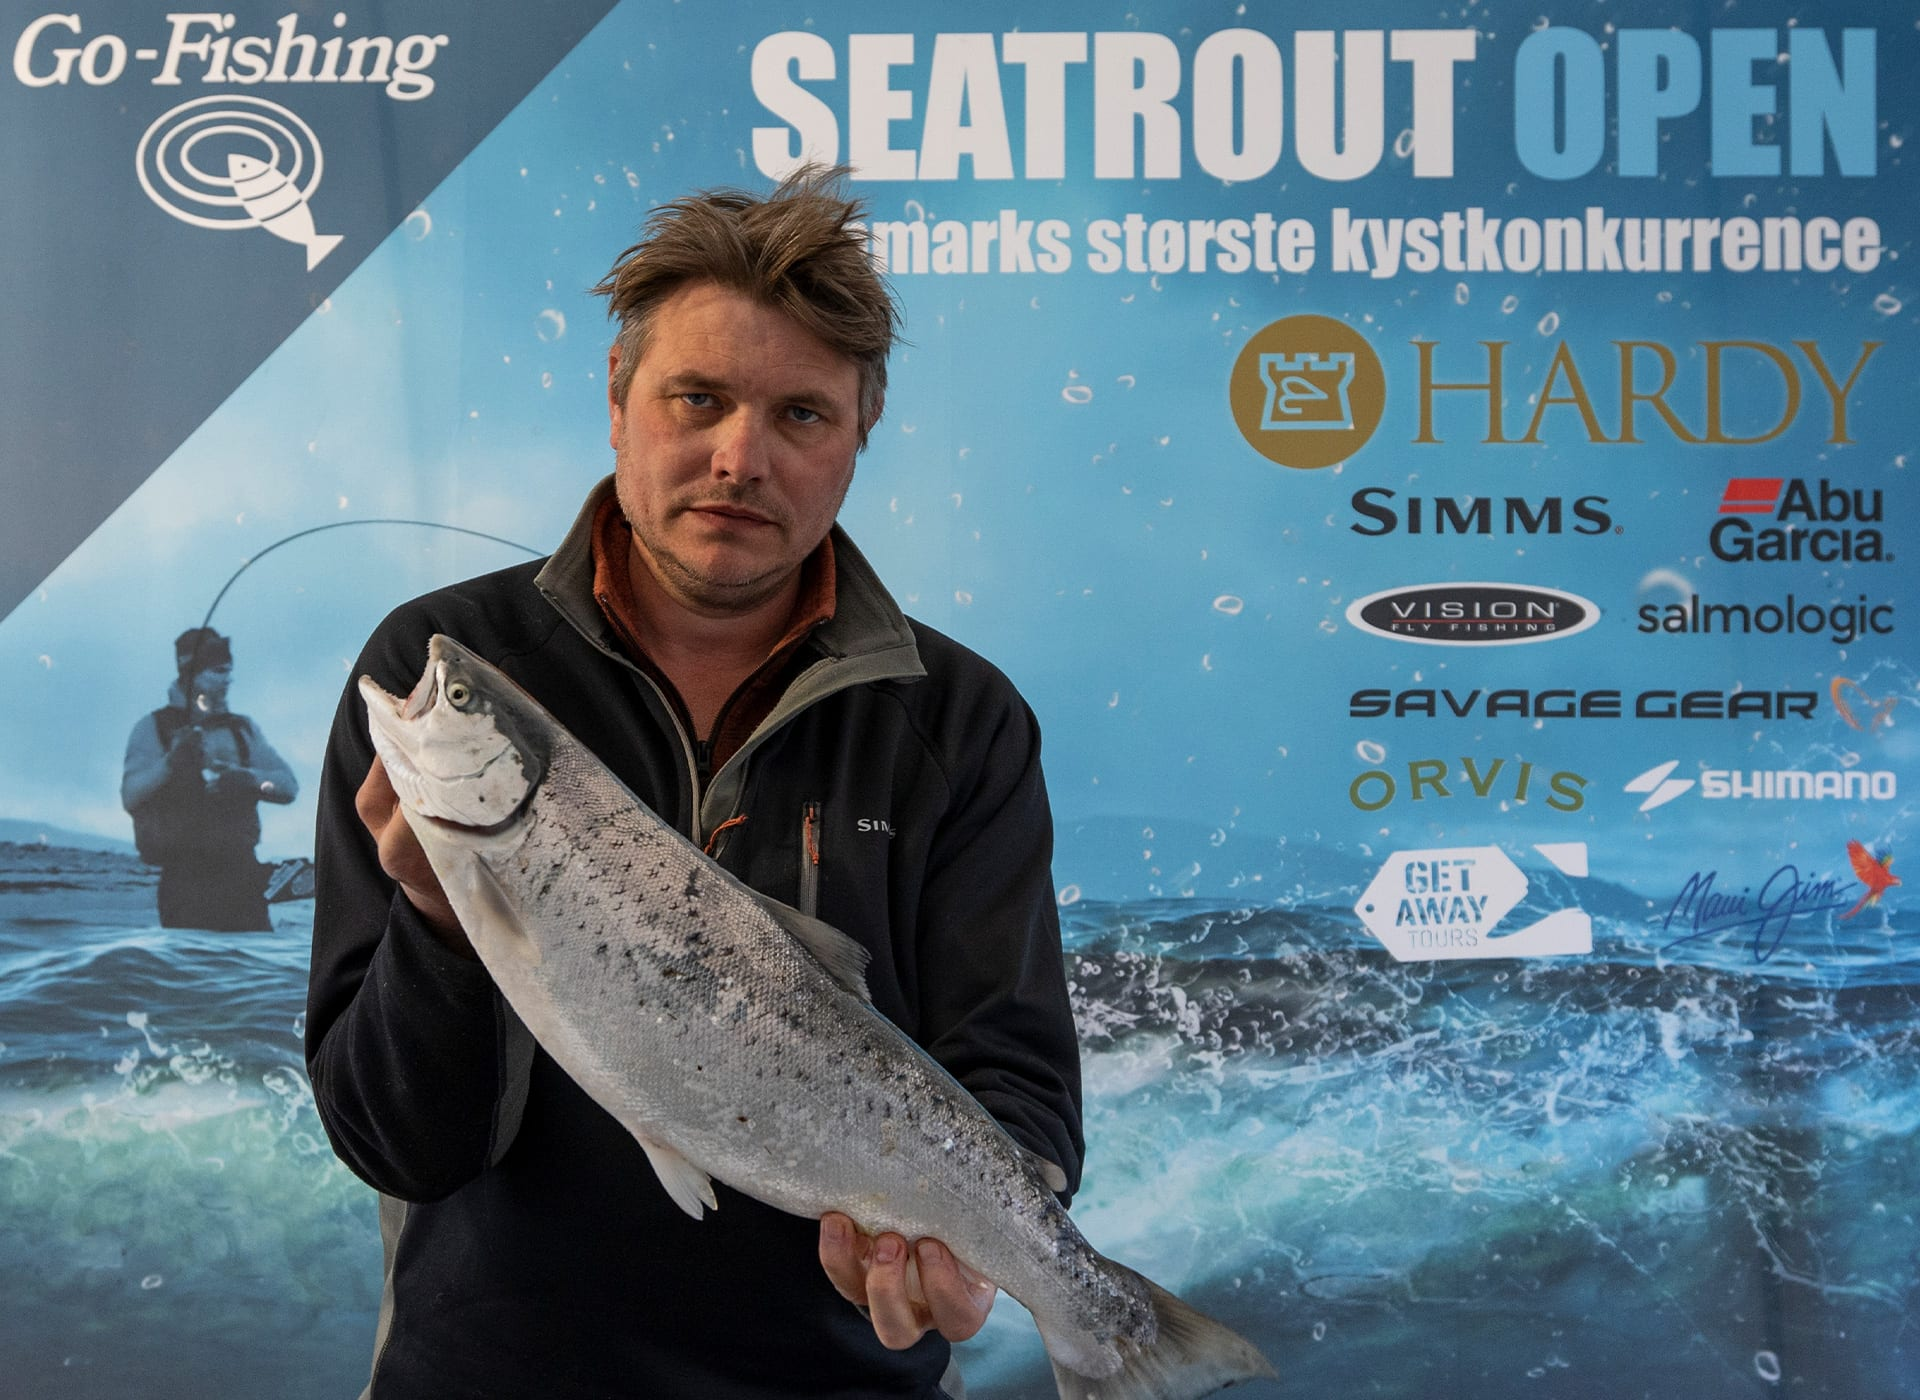 Seatrout Open deltager Lars Spring